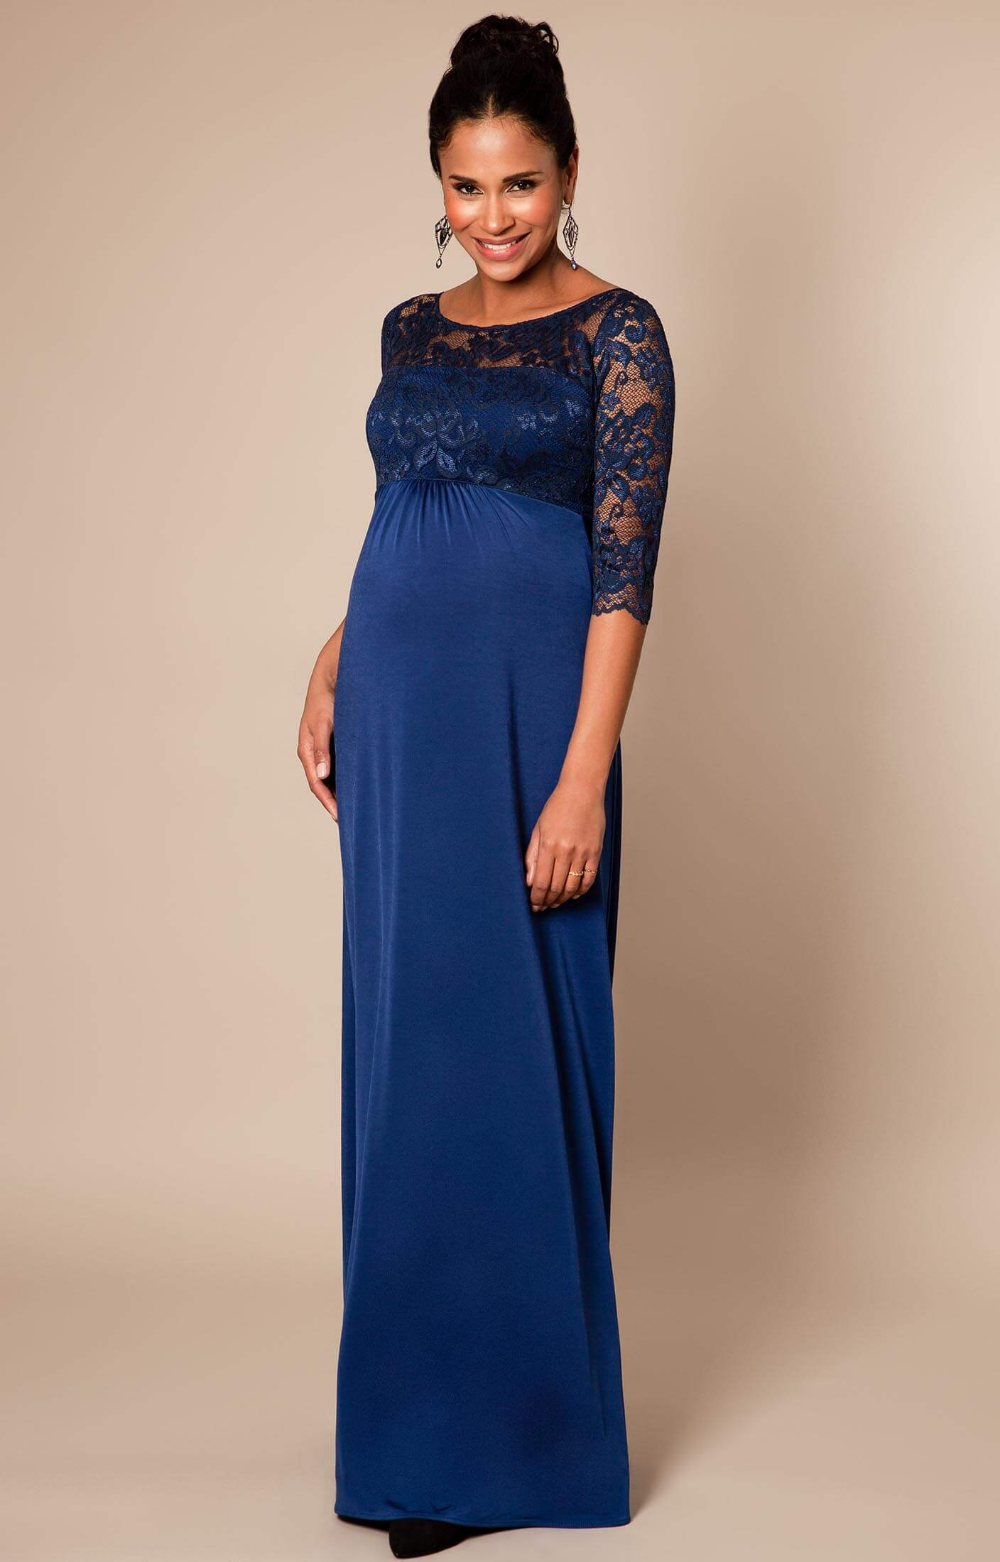 Lucia Maternity Gown Long Imperial Blue – Maternity Wedding Dresses, Evening Wear and Party Clothes by Tiffany Rose